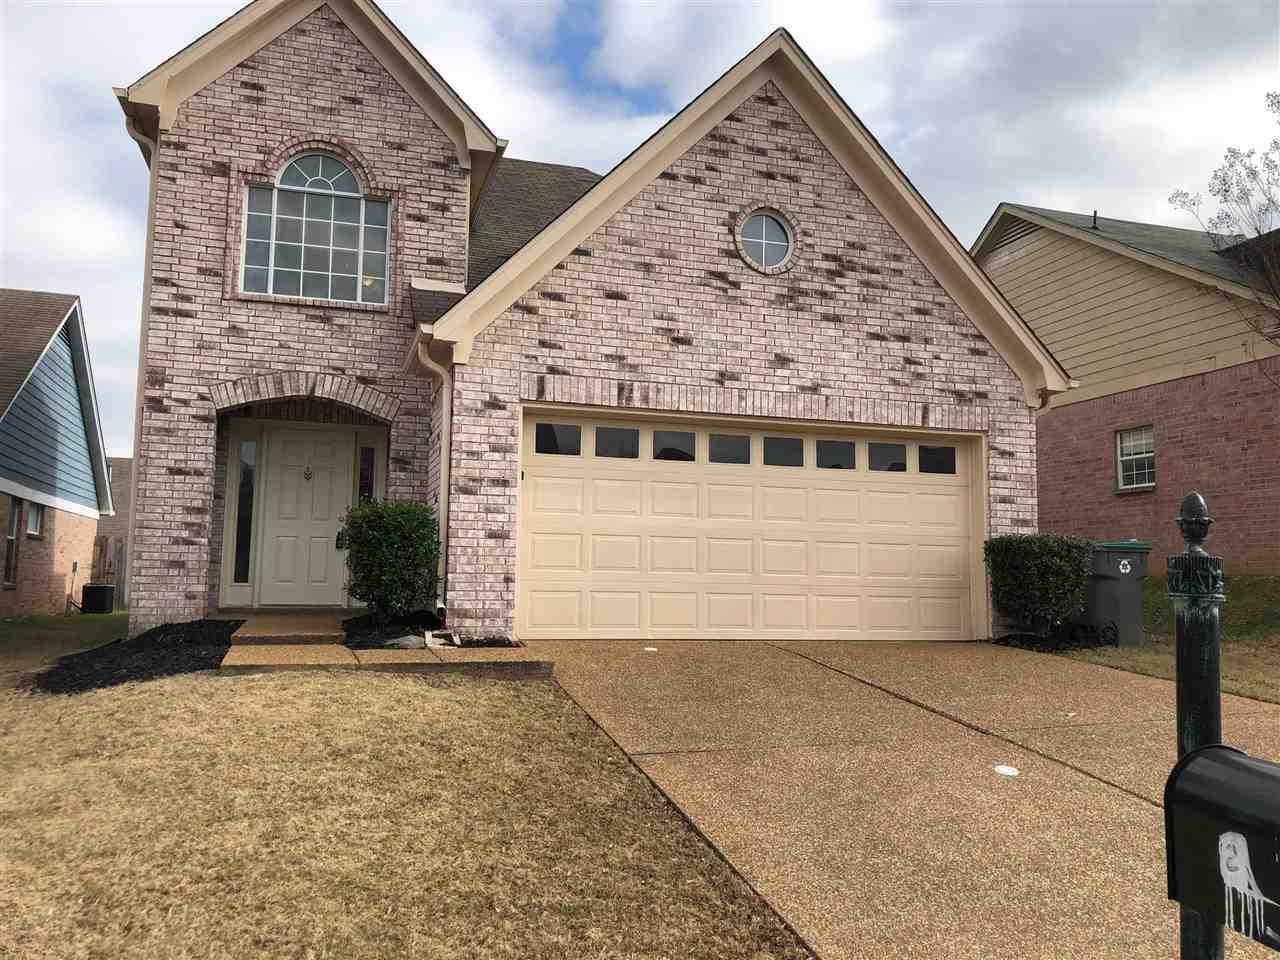 2796 Misty Valley Dr - Photo 1